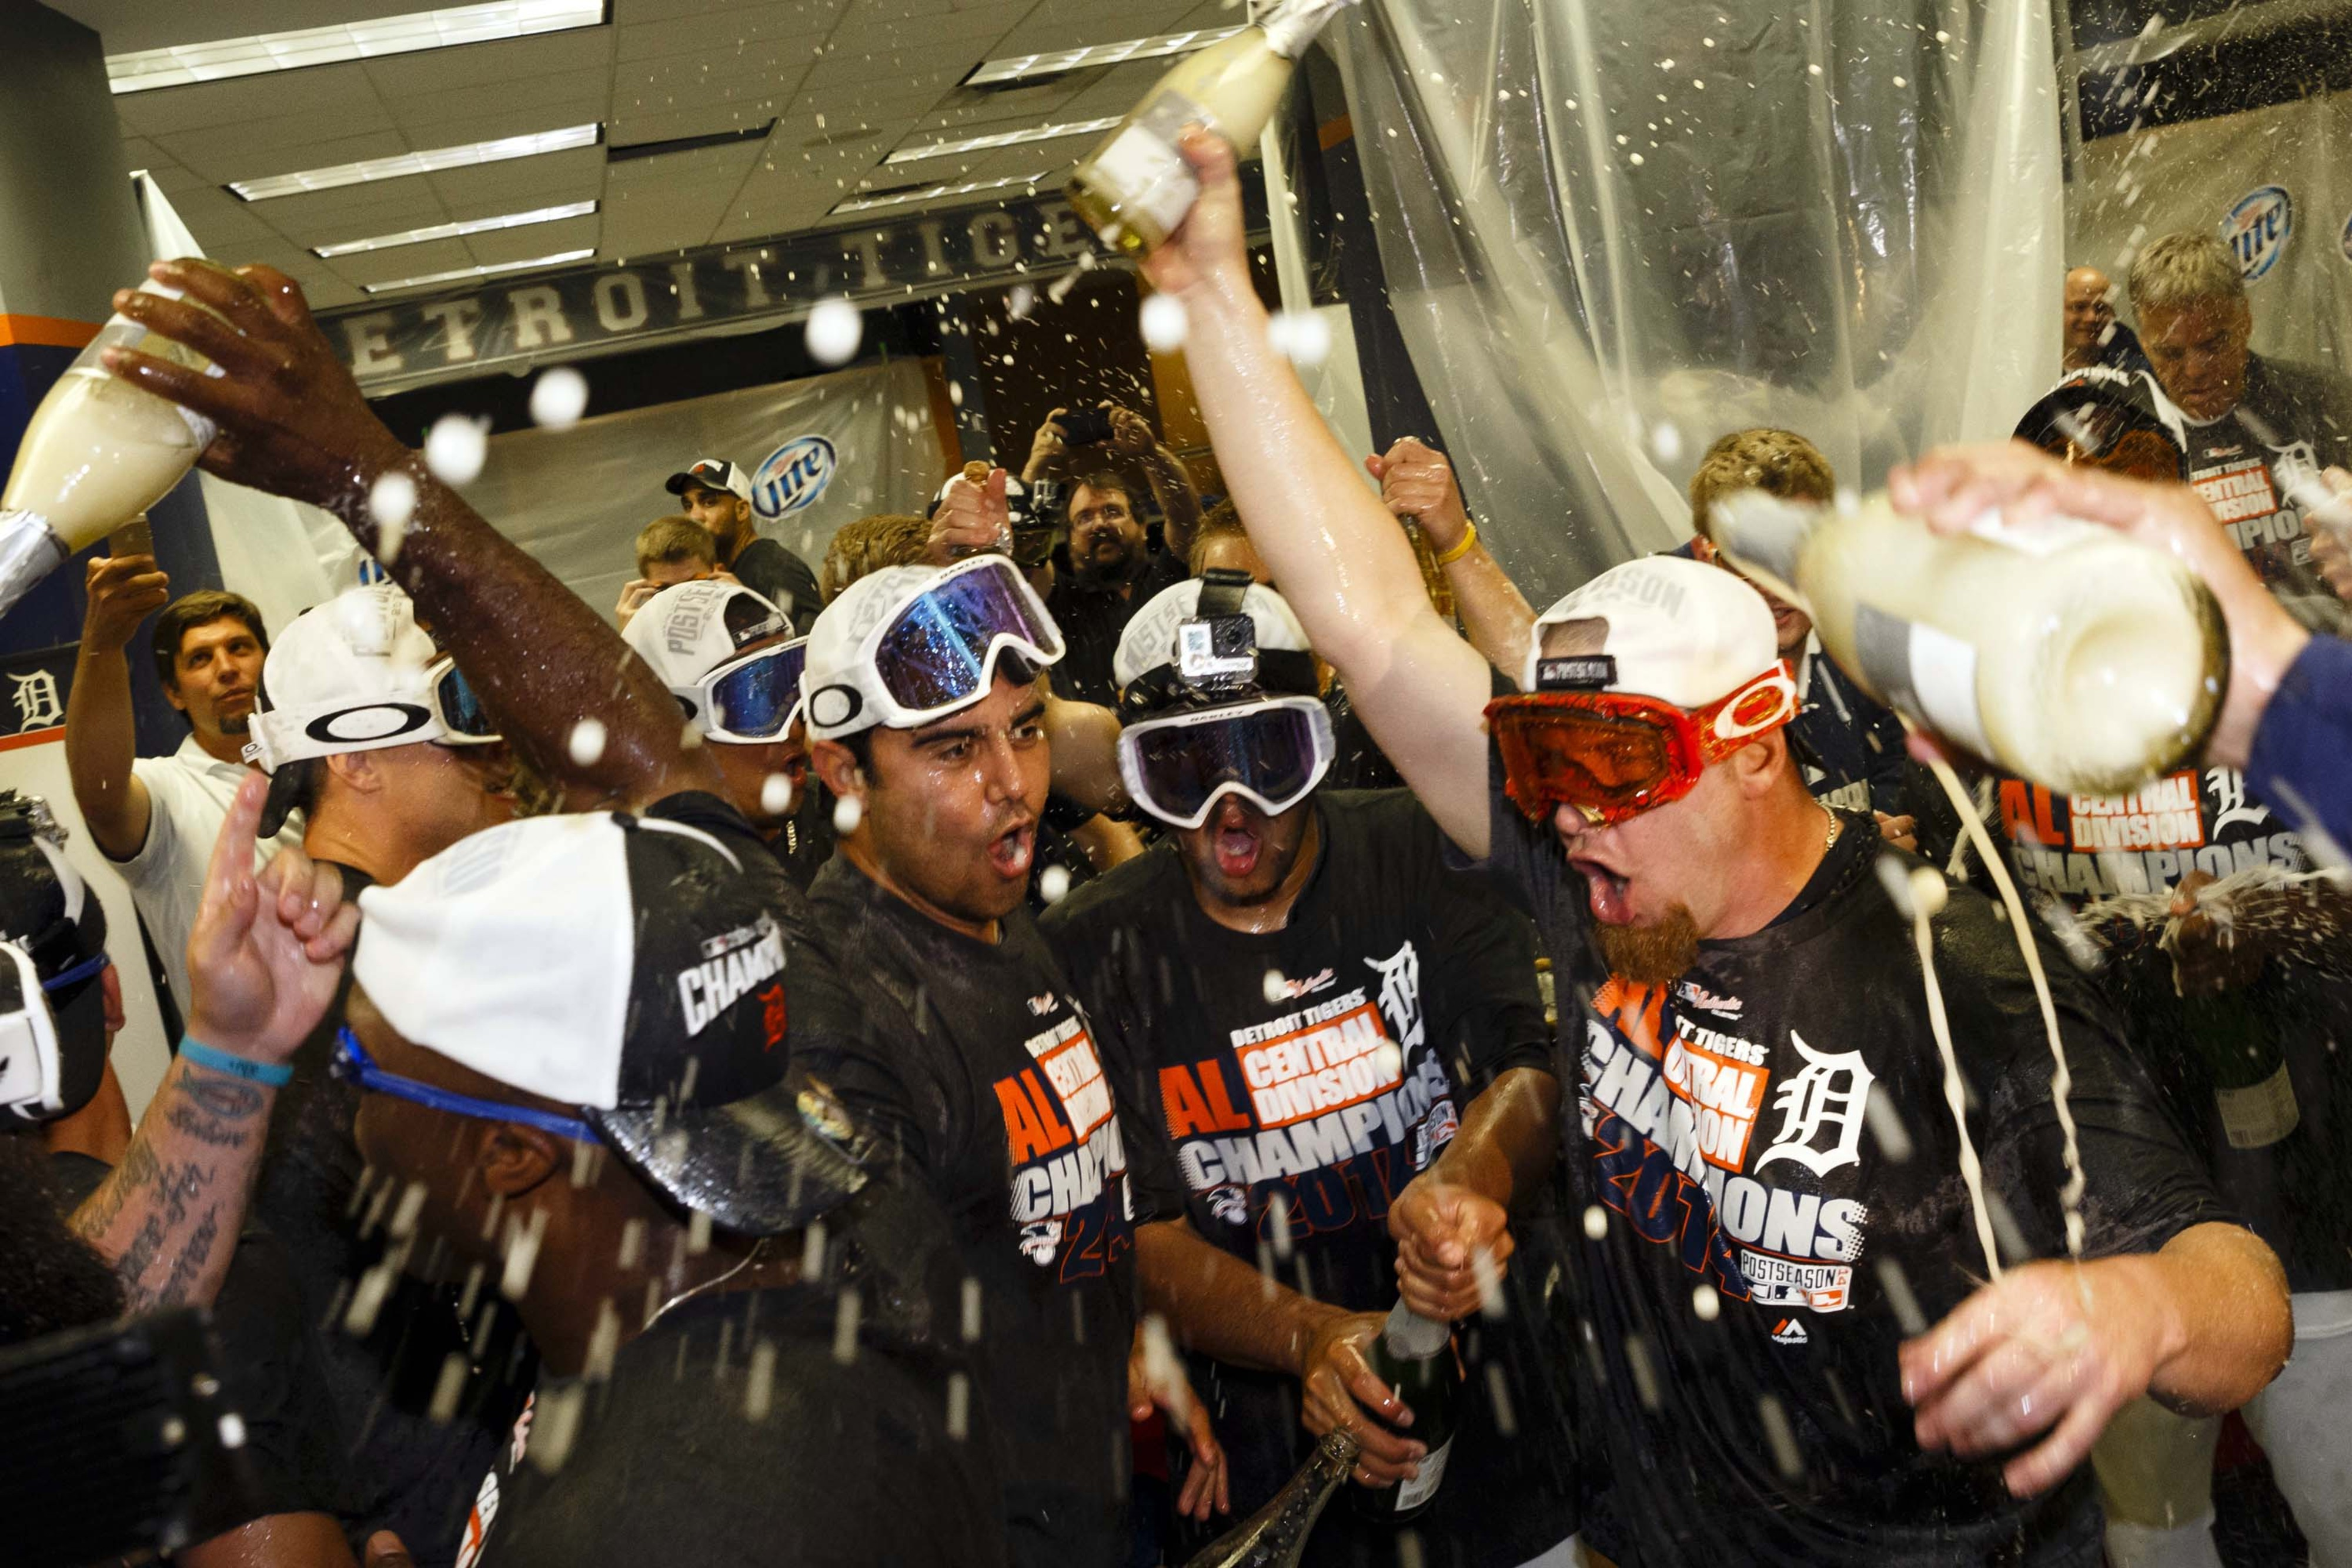 Detroit Tigers players celebrate after winning the Central Division Championship on September 28, 2014